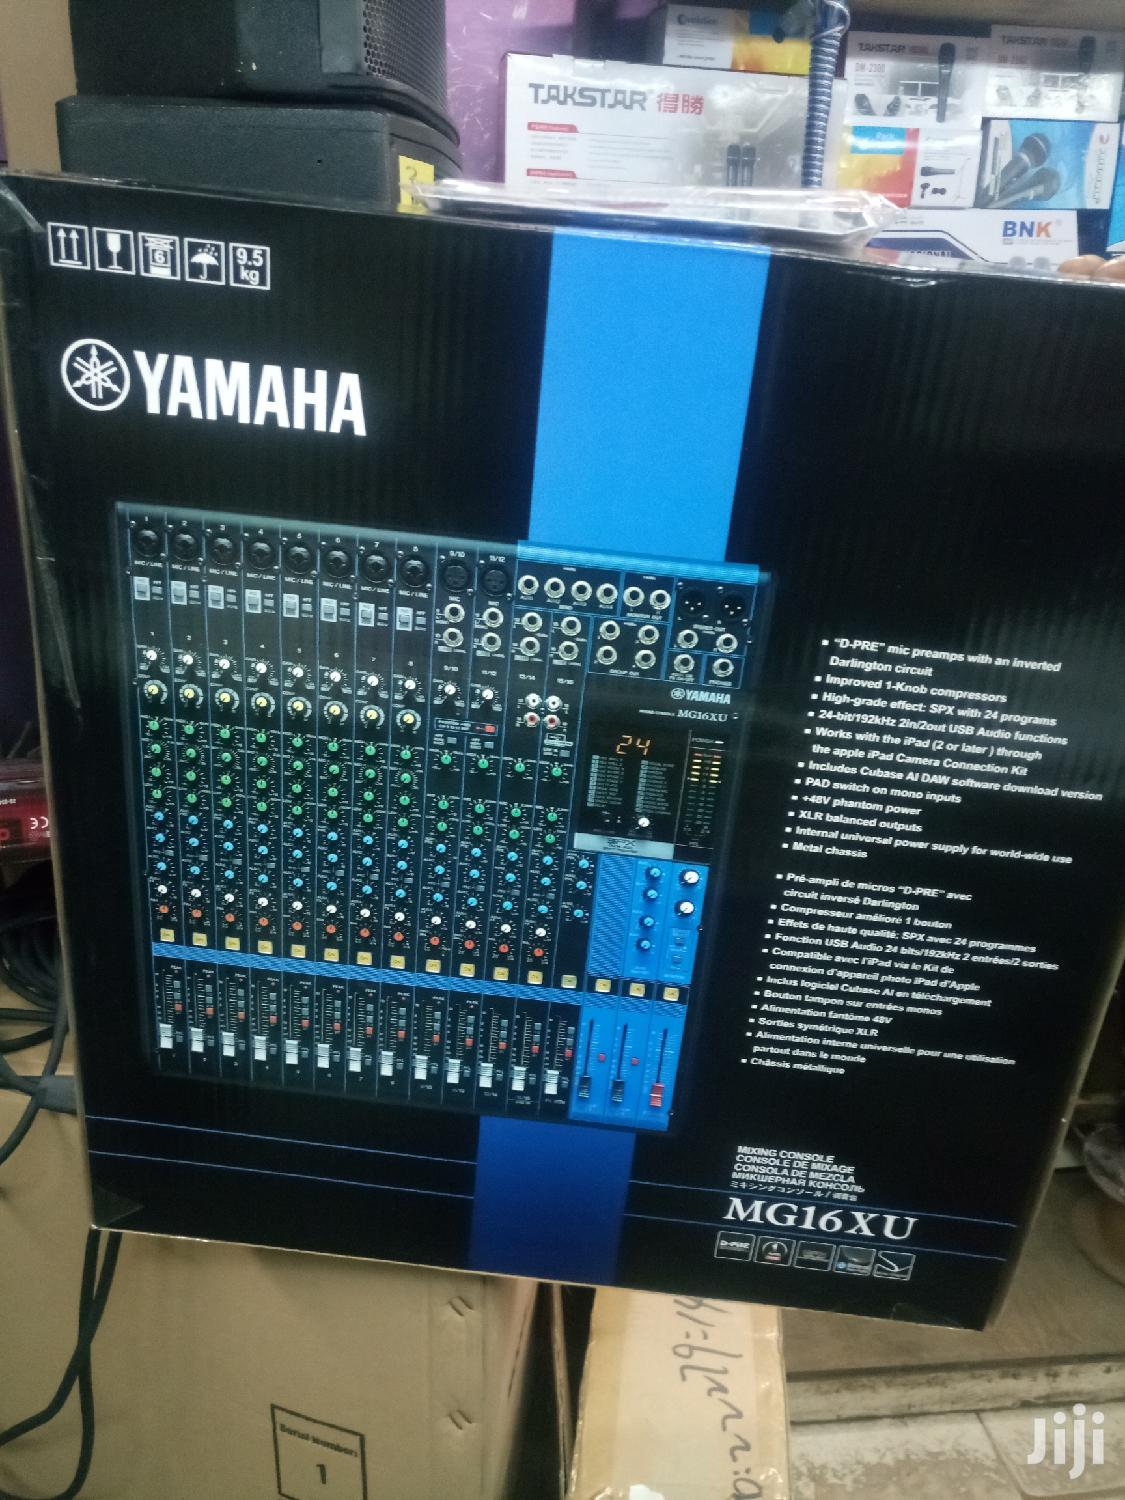 Yamaha Mg16xu | Audio & Music Equipment for sale in Harambee, Nairobi, Kenya